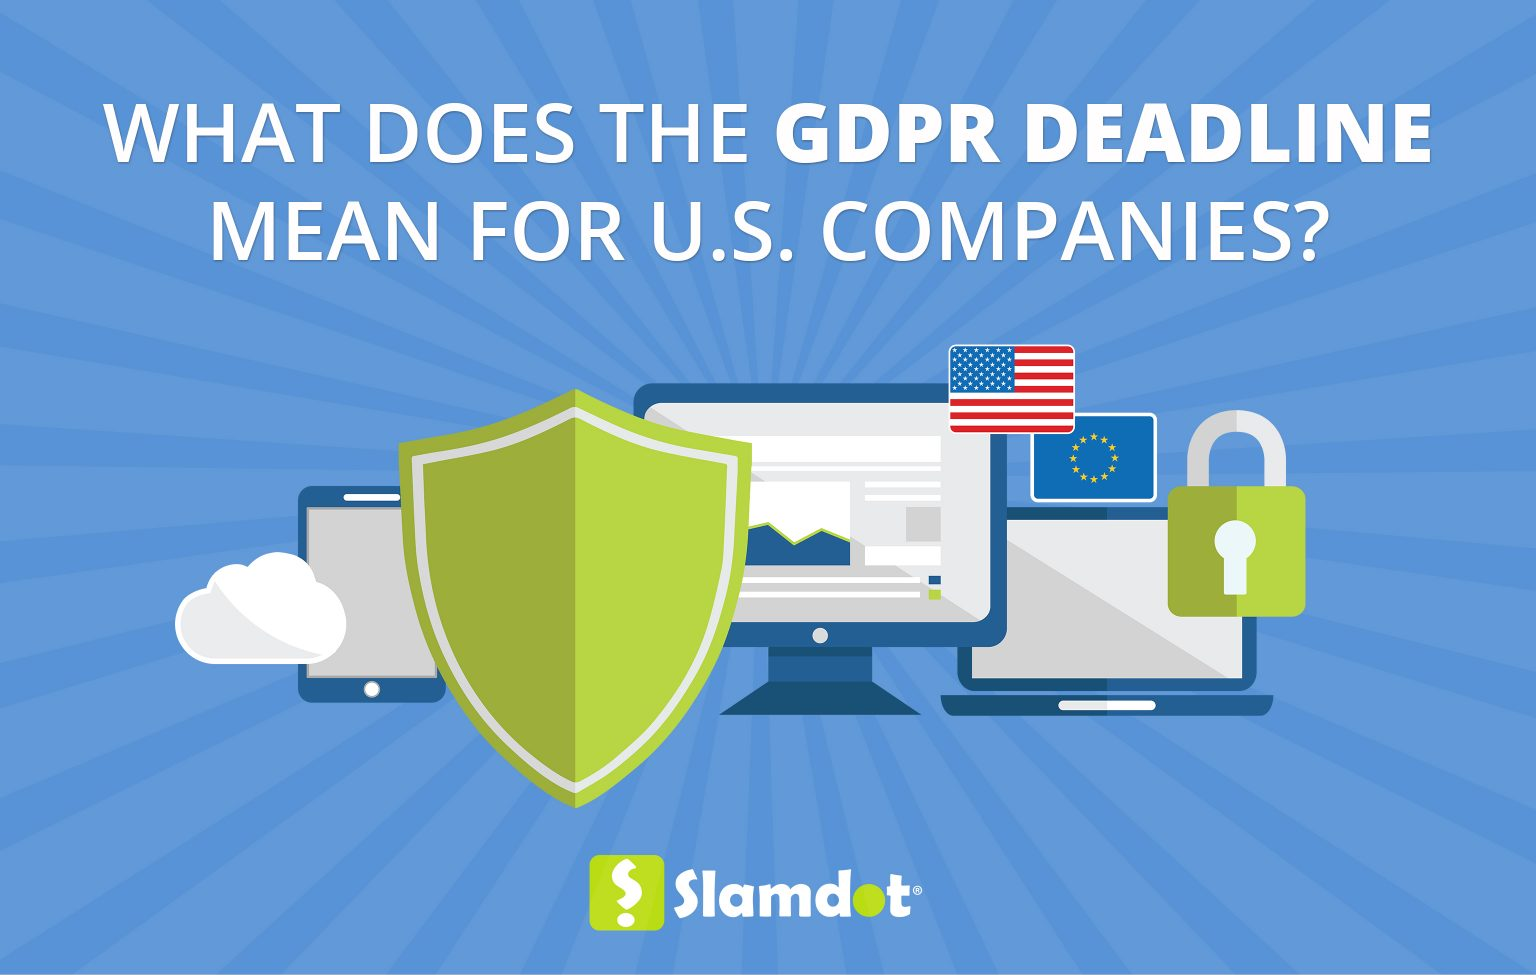 What Does the GDPR Deadline Mean for U.S. Companies? — Slamdot Blog